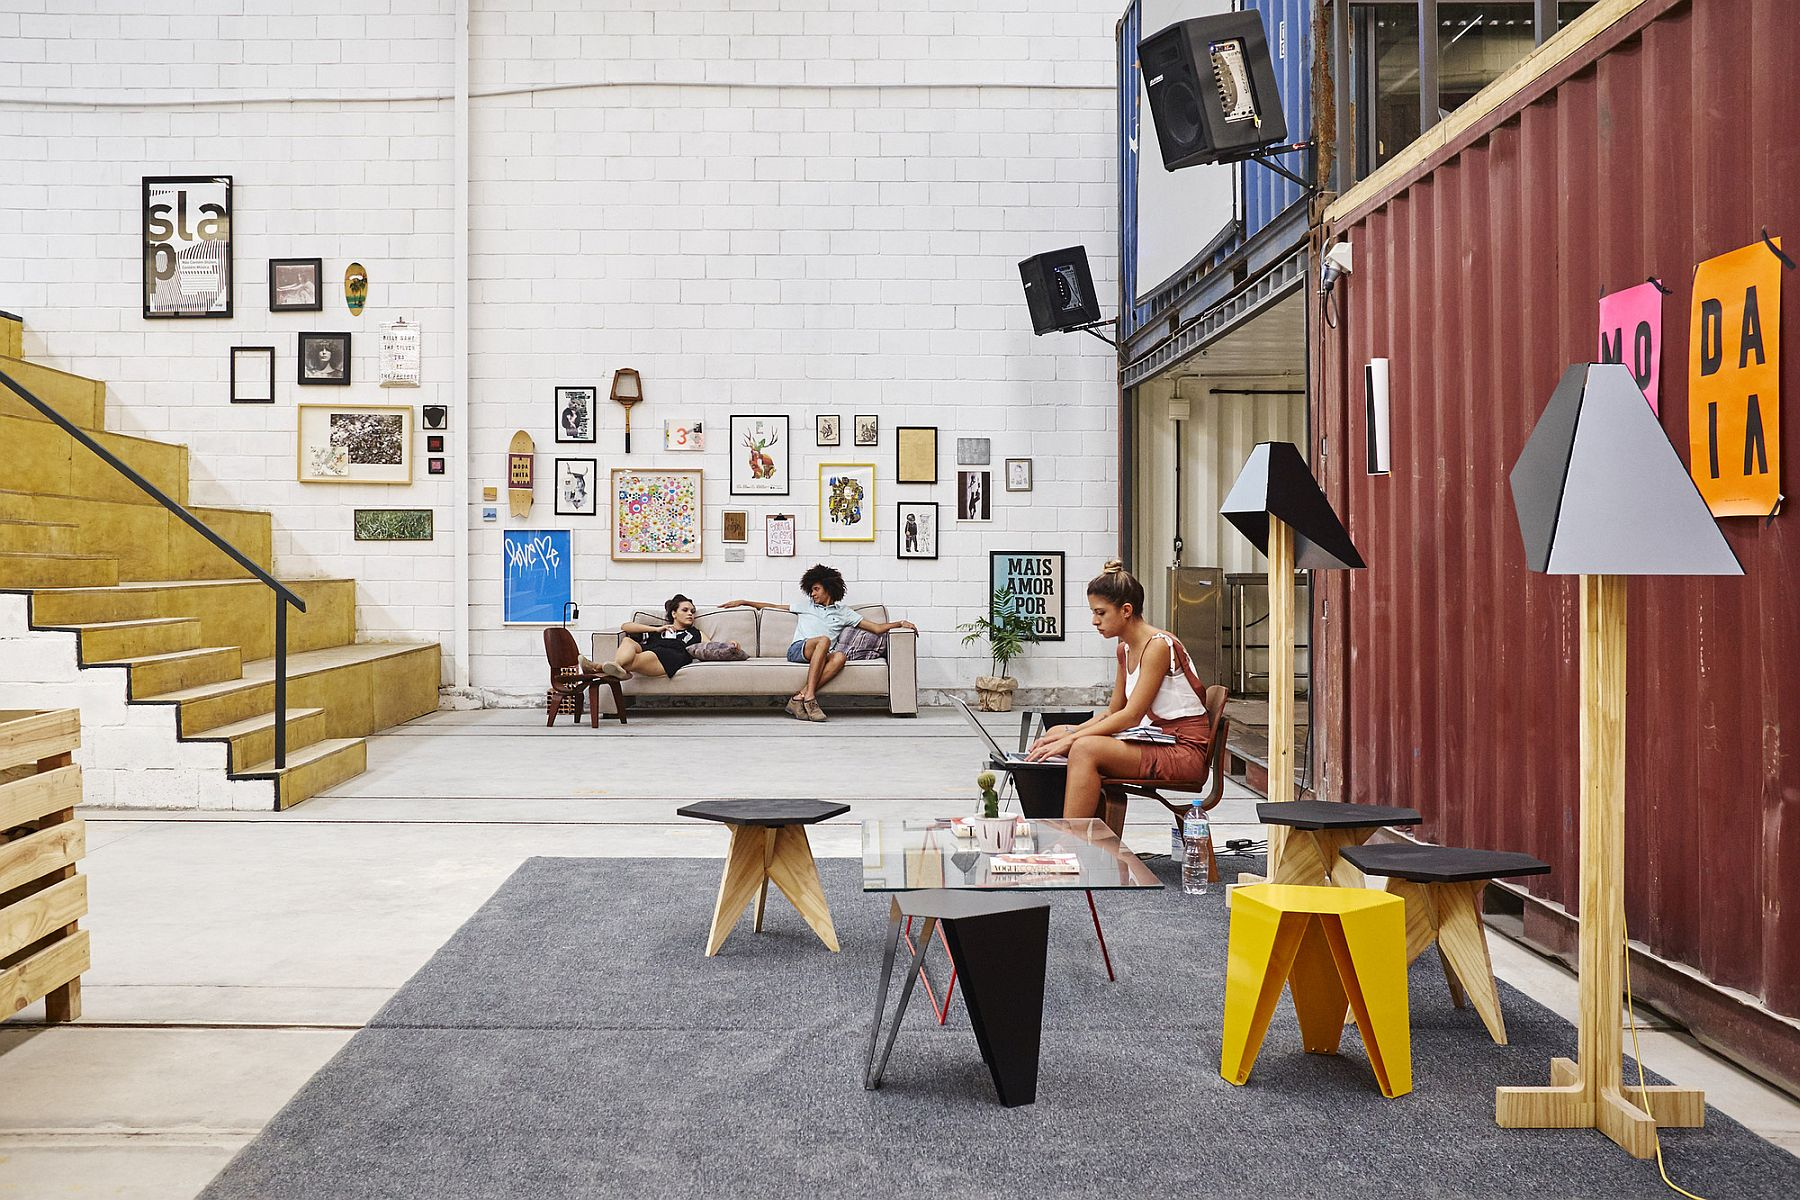 A sustainable and fashion-centric hub in Rio – MALHA